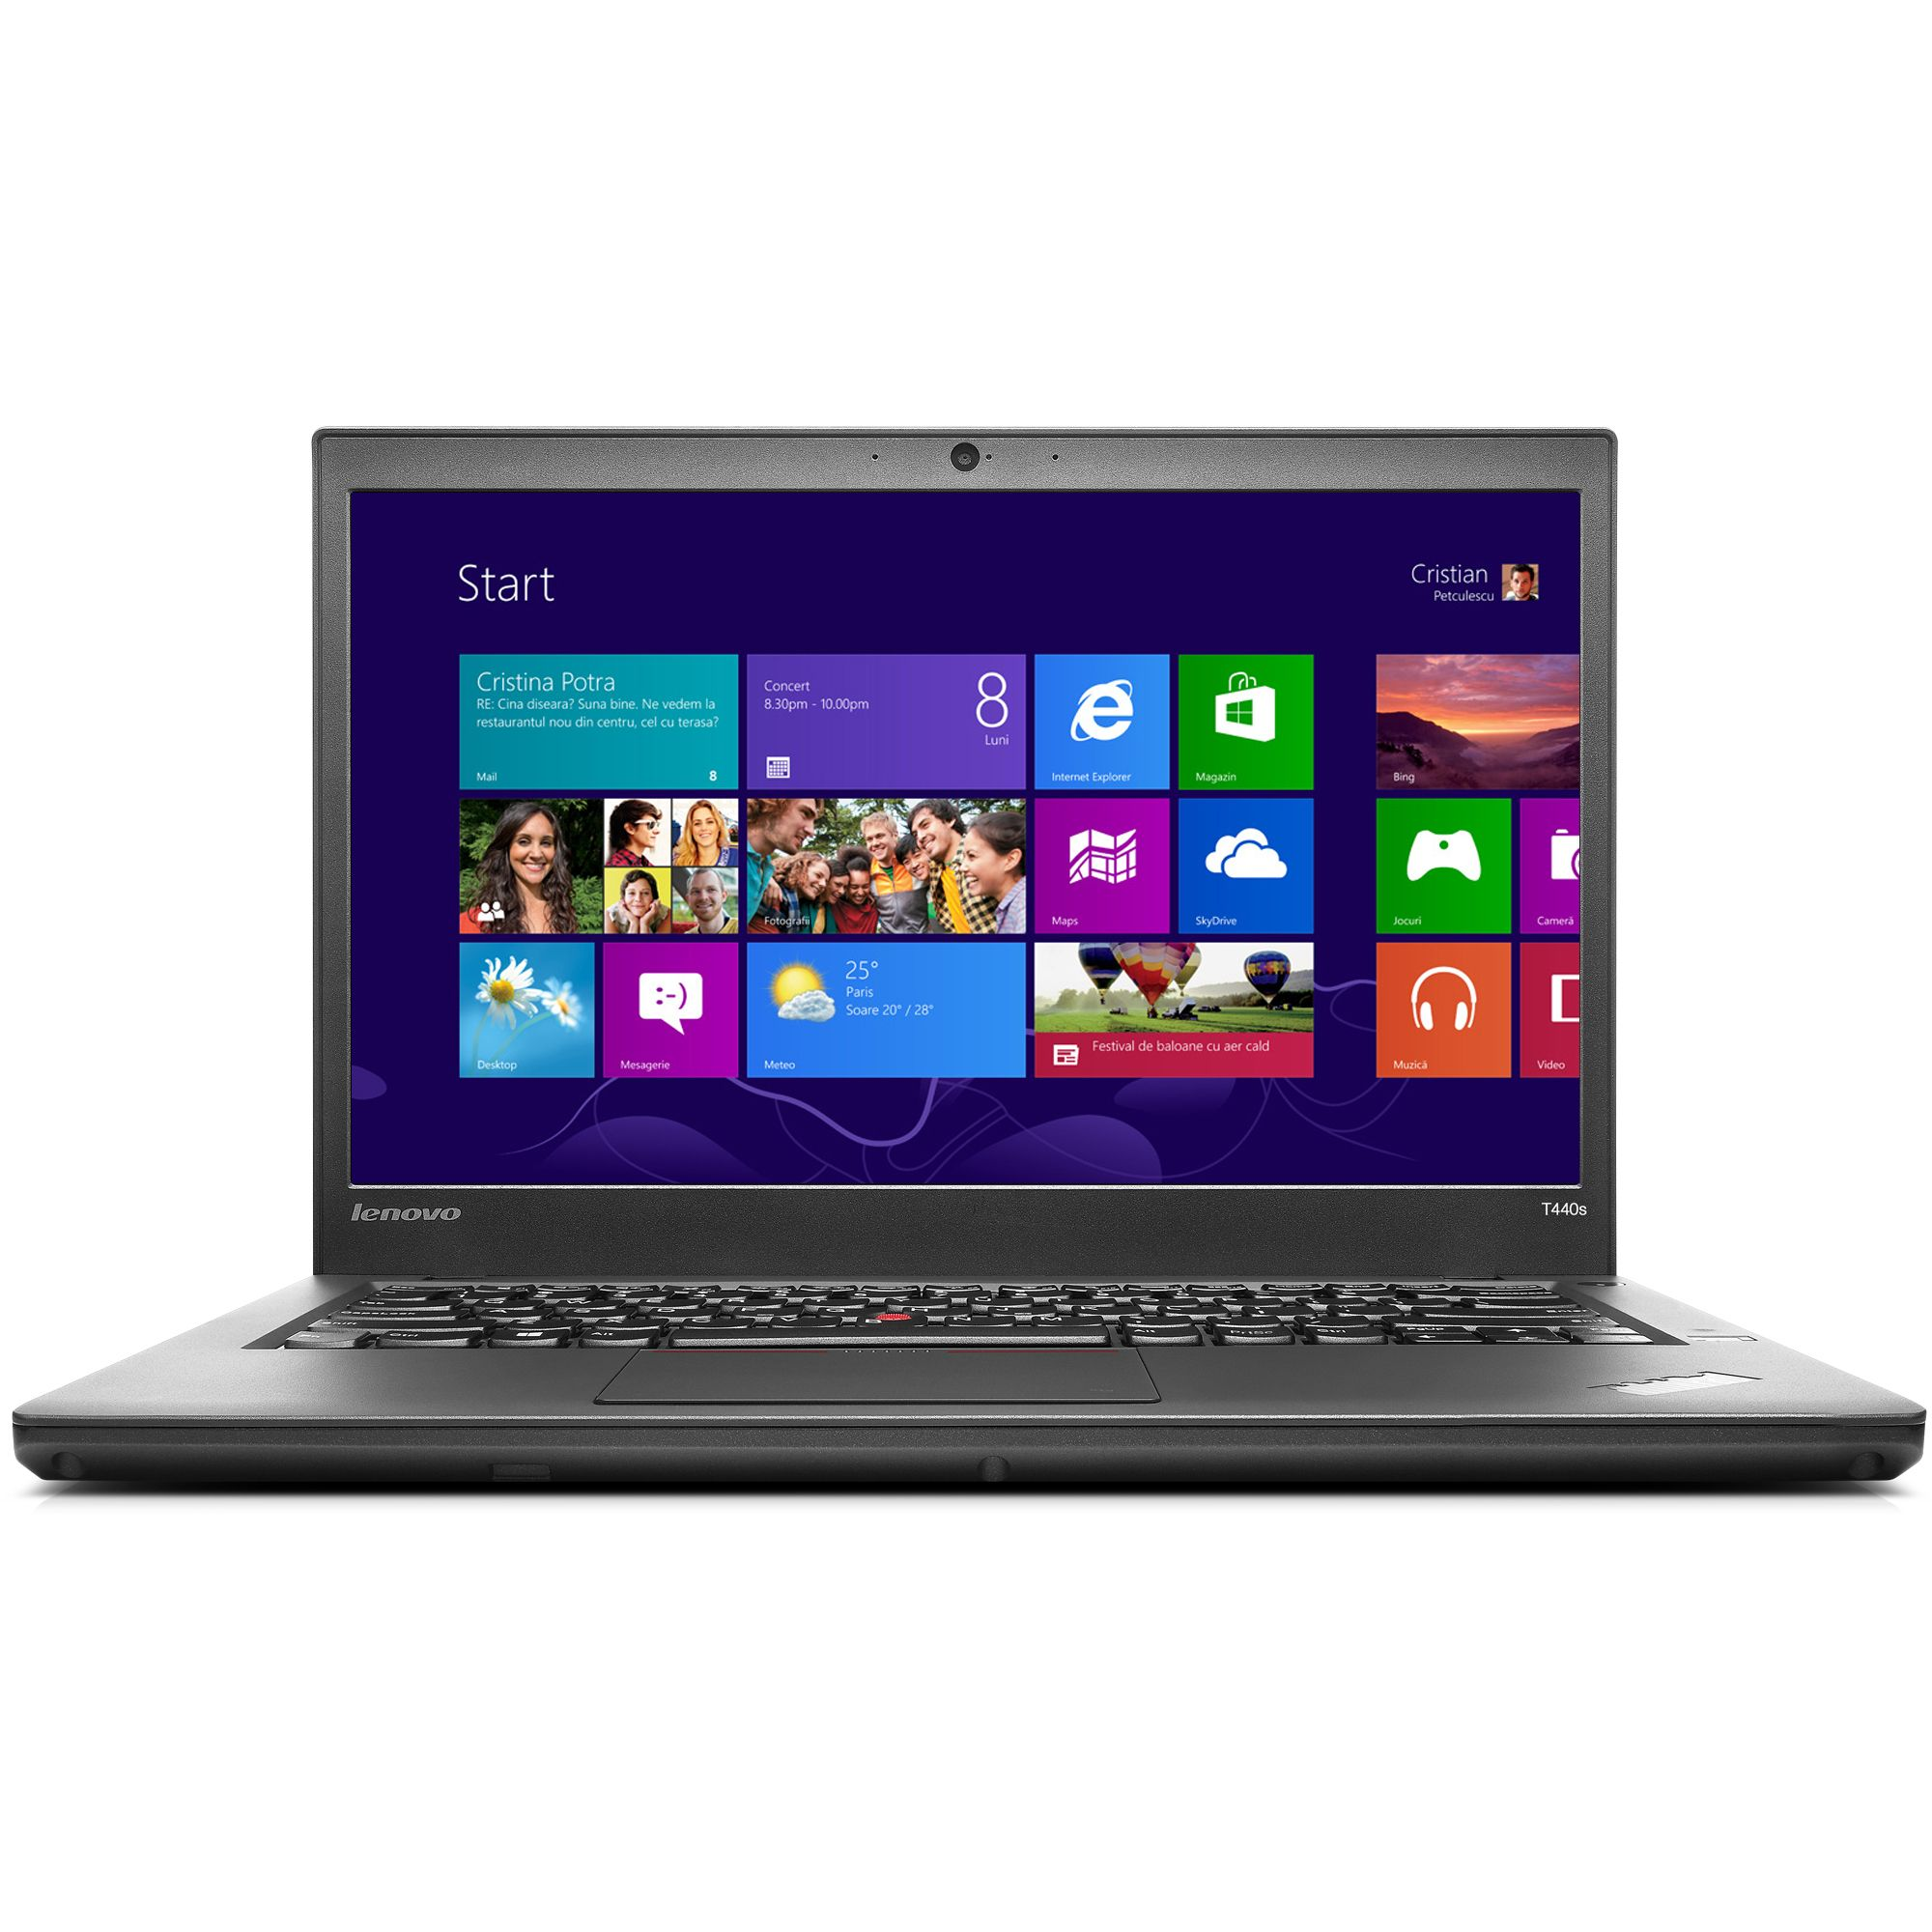 Notebook Lenovo ThinkPad T440p 14 Intel Core i5-4300M RAM 8GB 1TB Hybrid Windows 7 Pro Negru